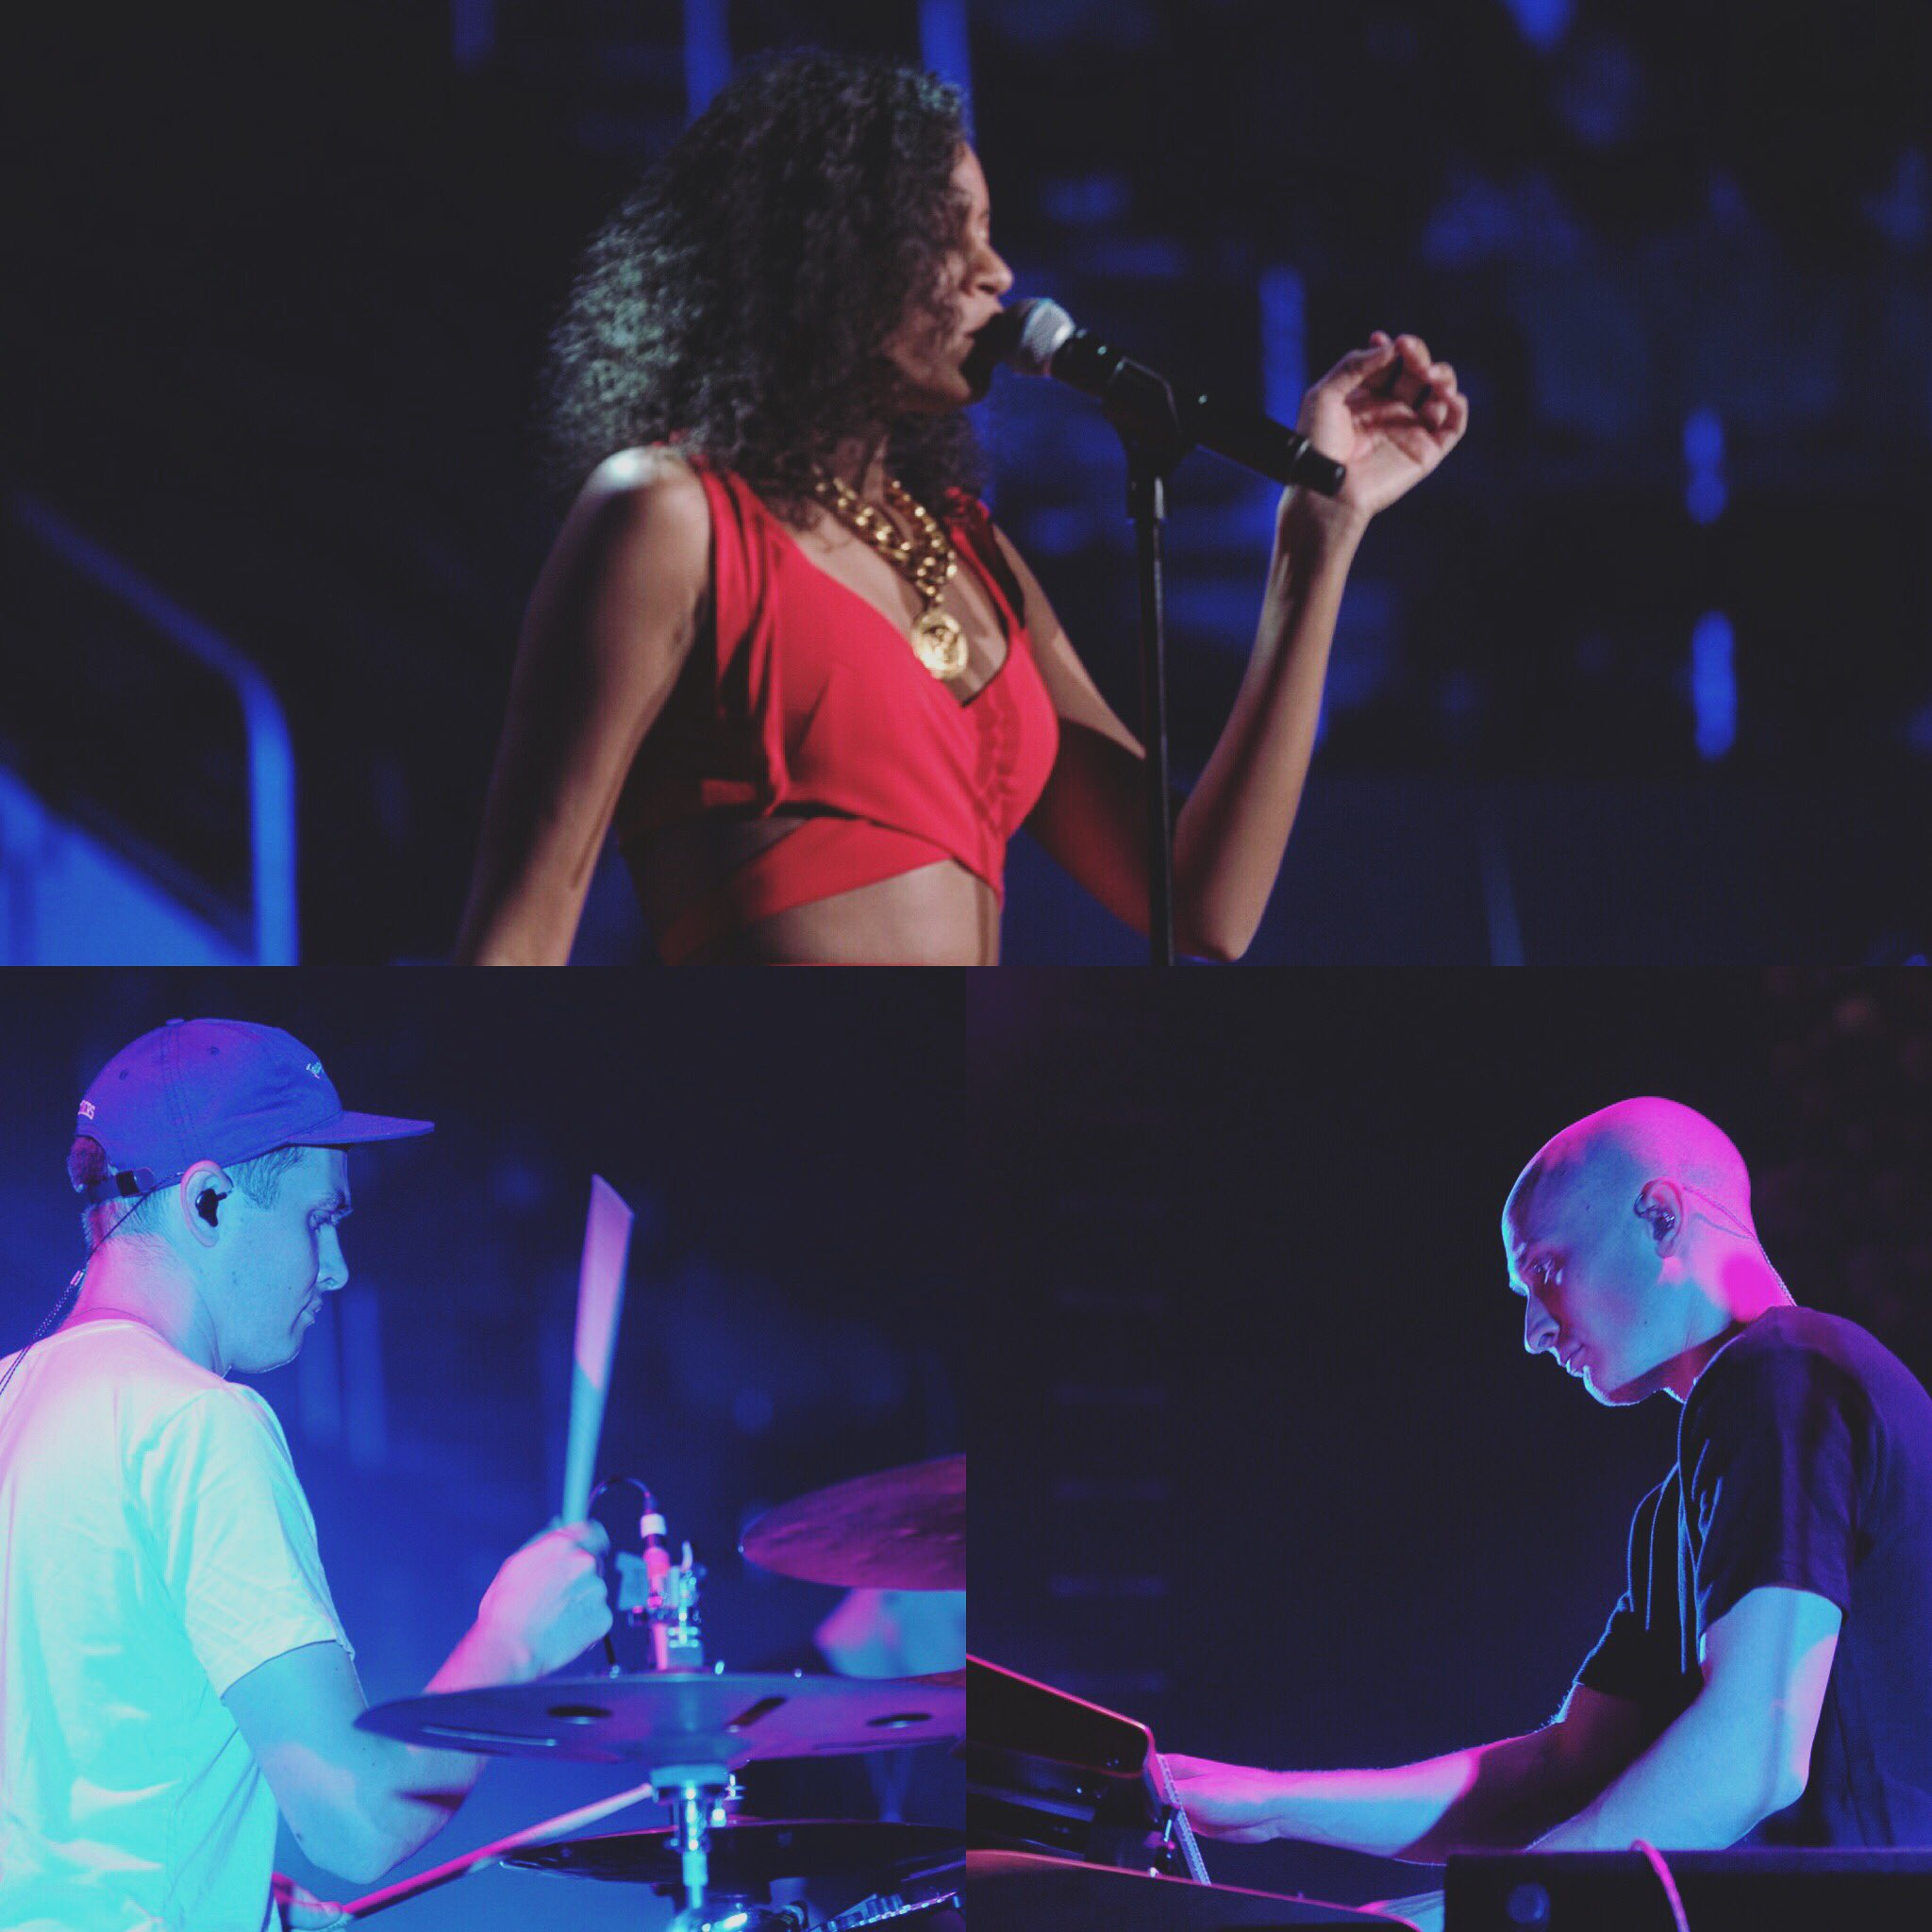 AlunaGeorge. R42 #ColdplayCleveland #Coldplay https://t.co/BPvUKTyn9L